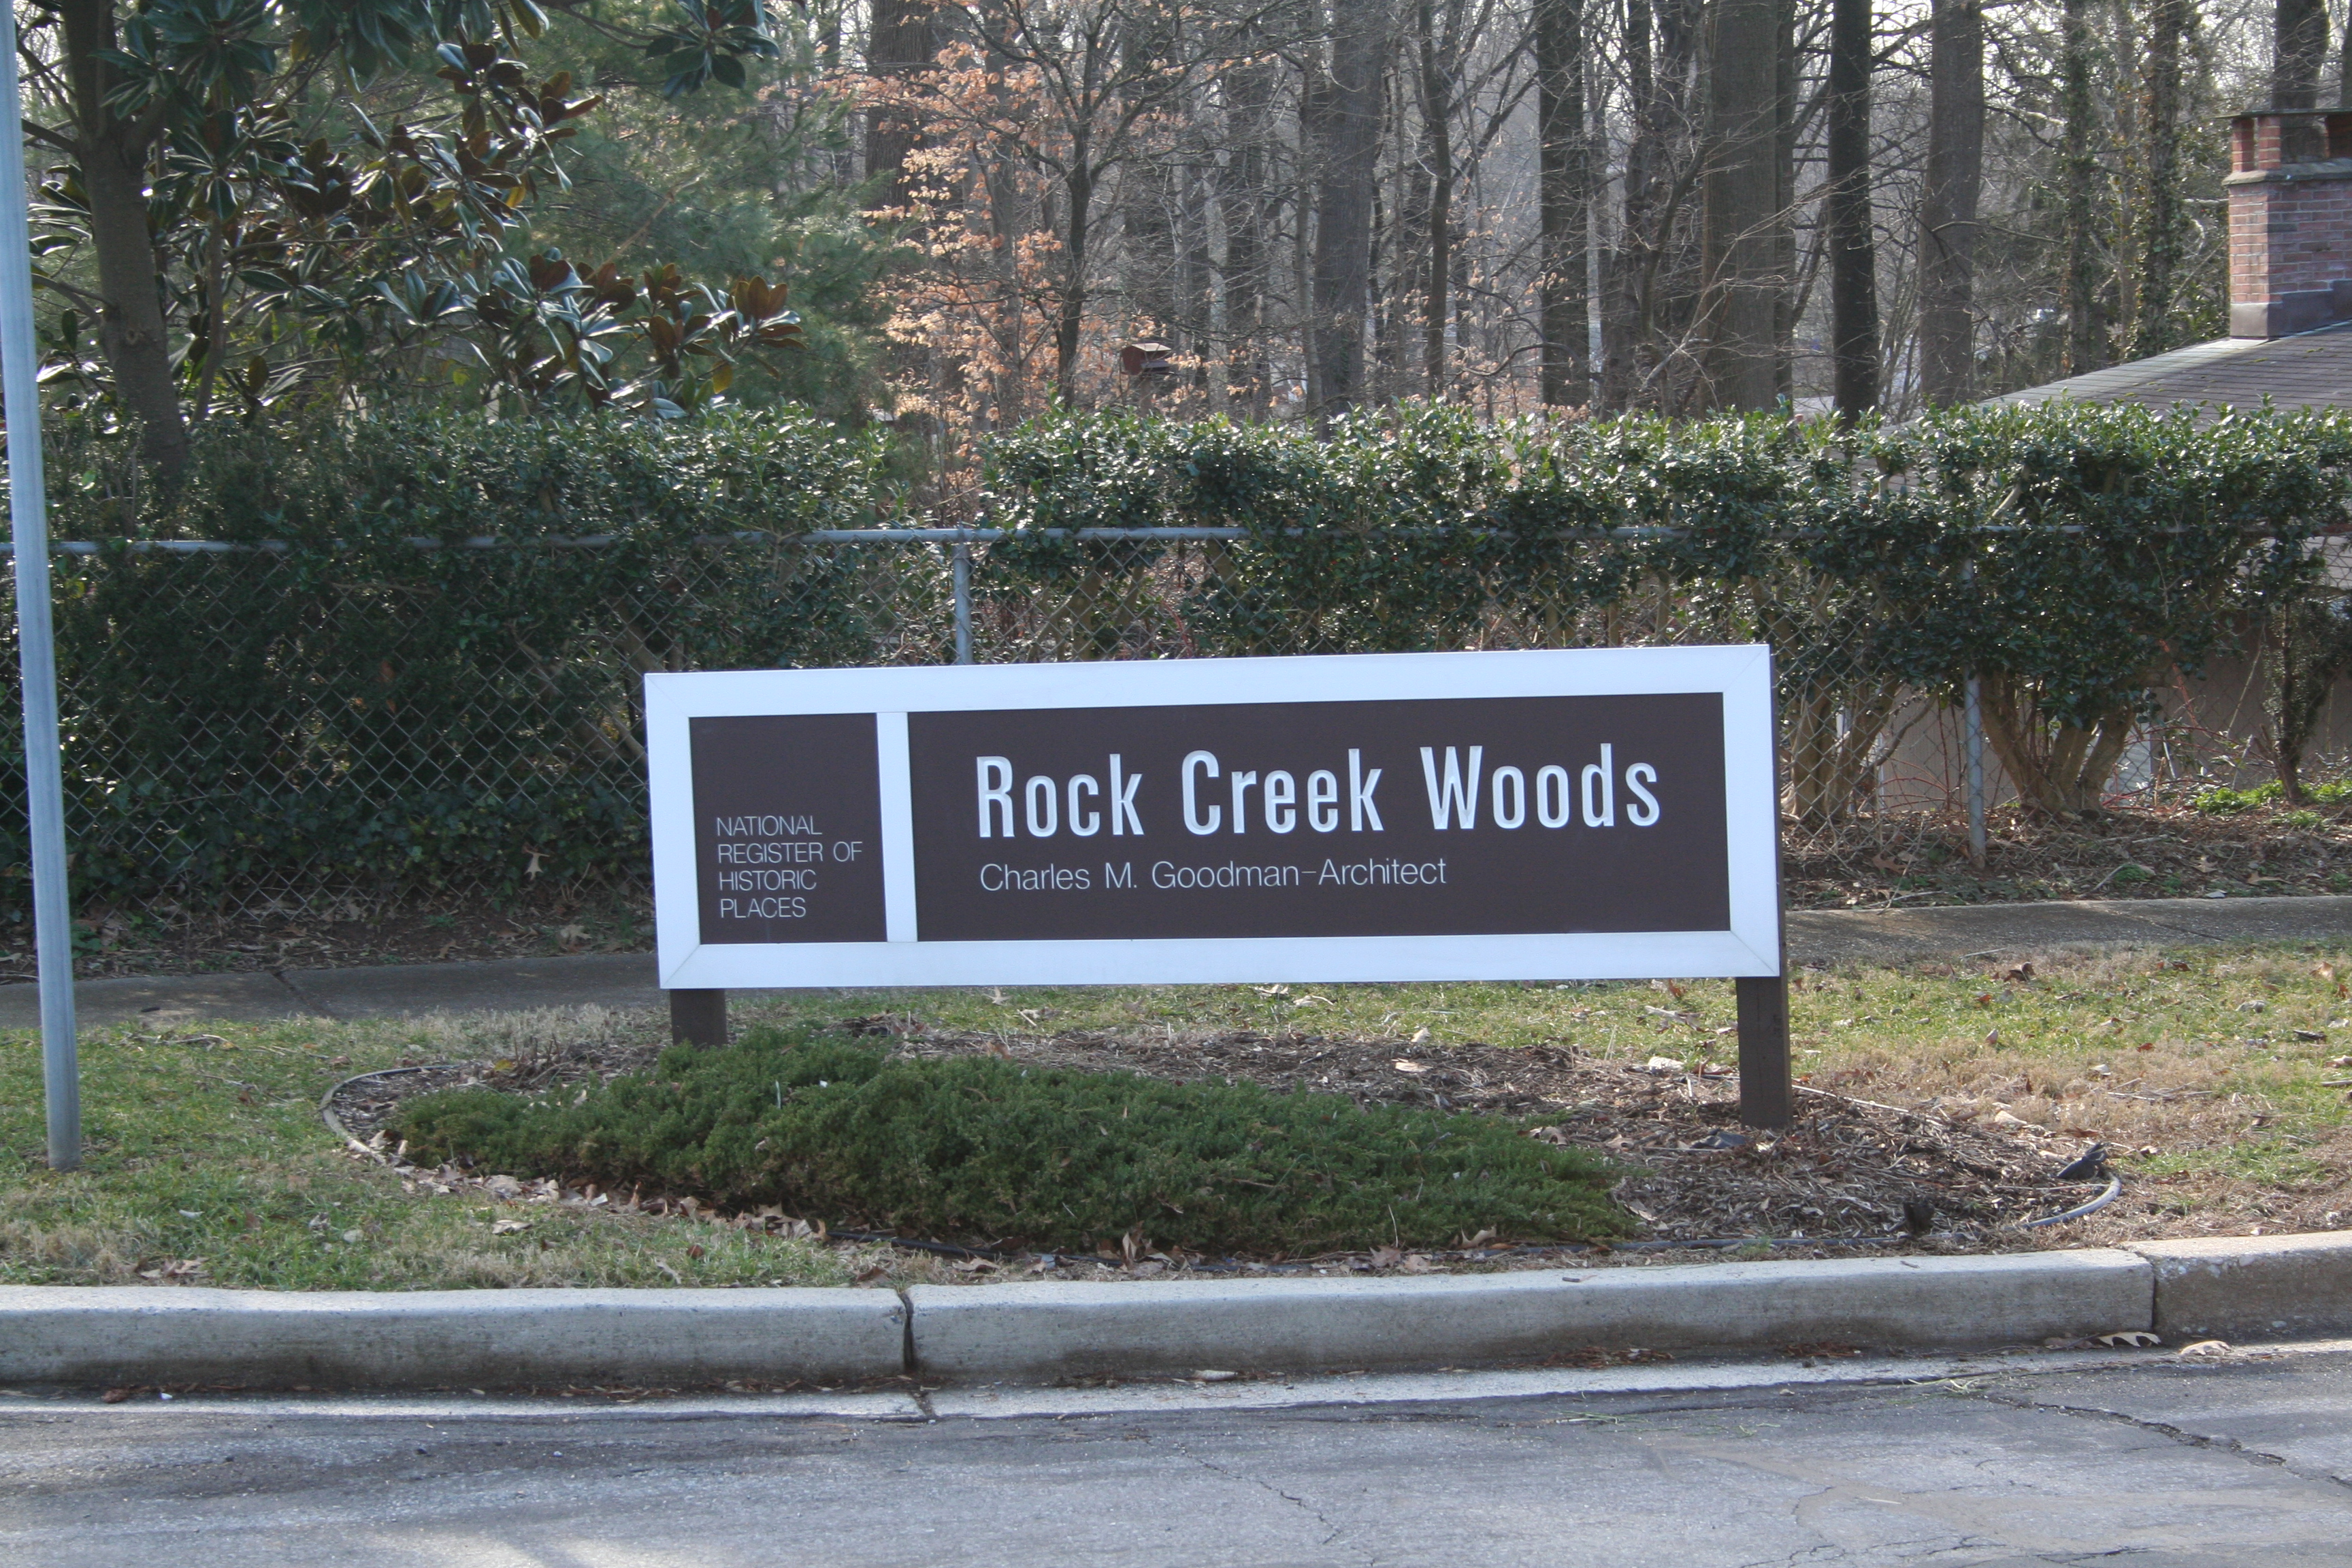 Rock Creek Woods